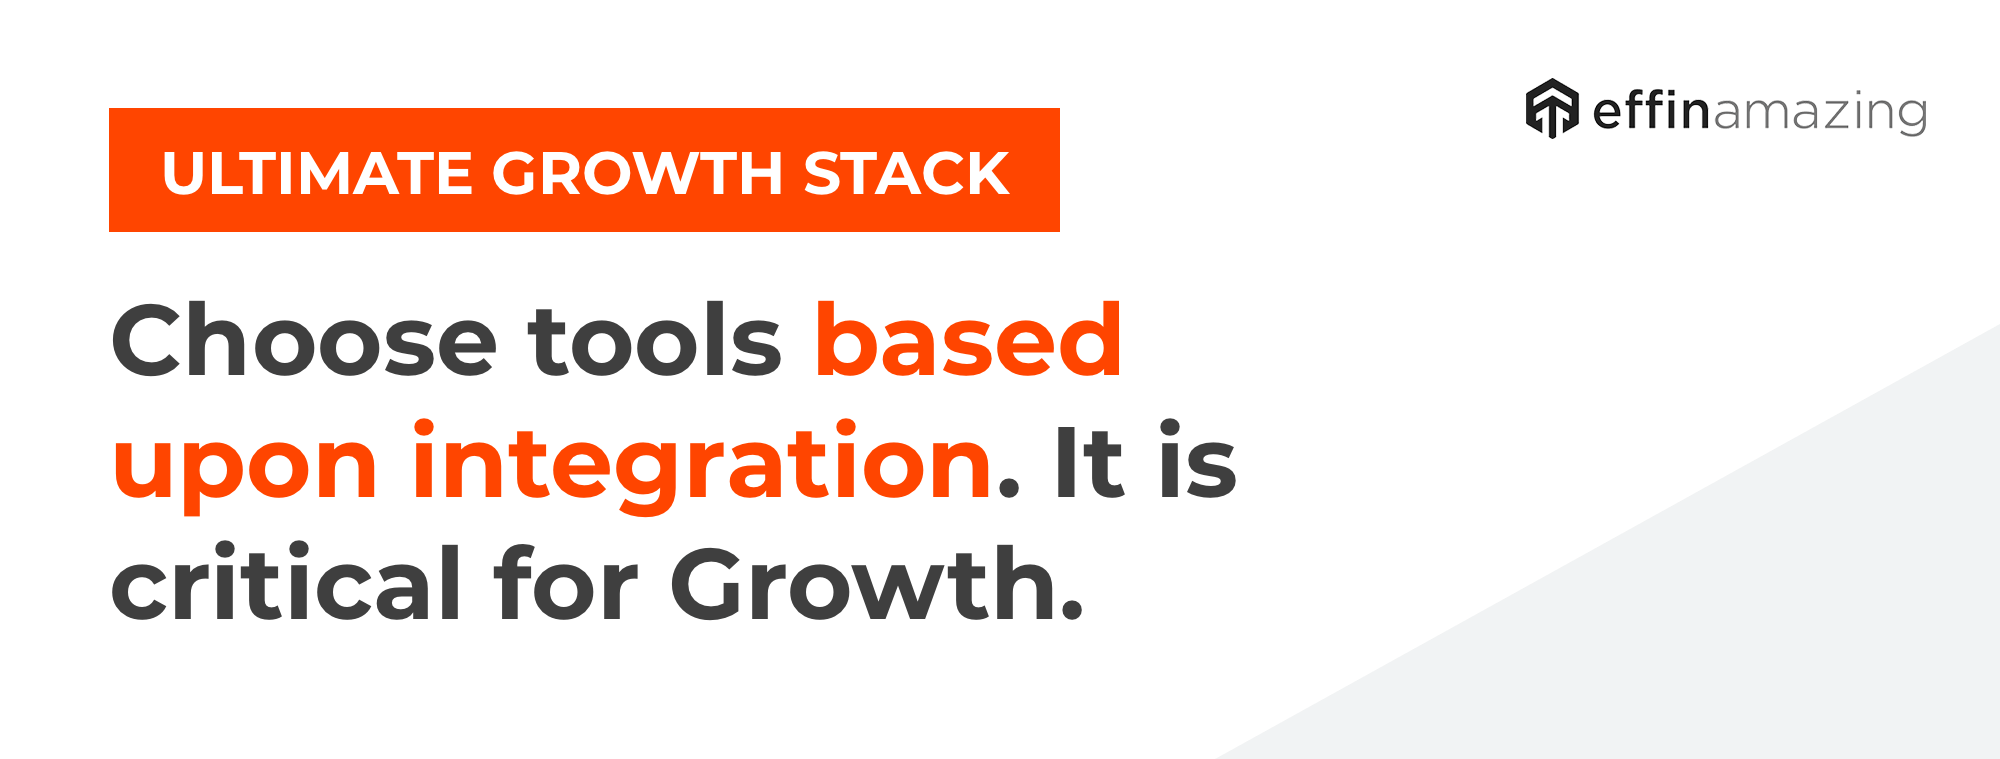 The ultimate growth stack and integration